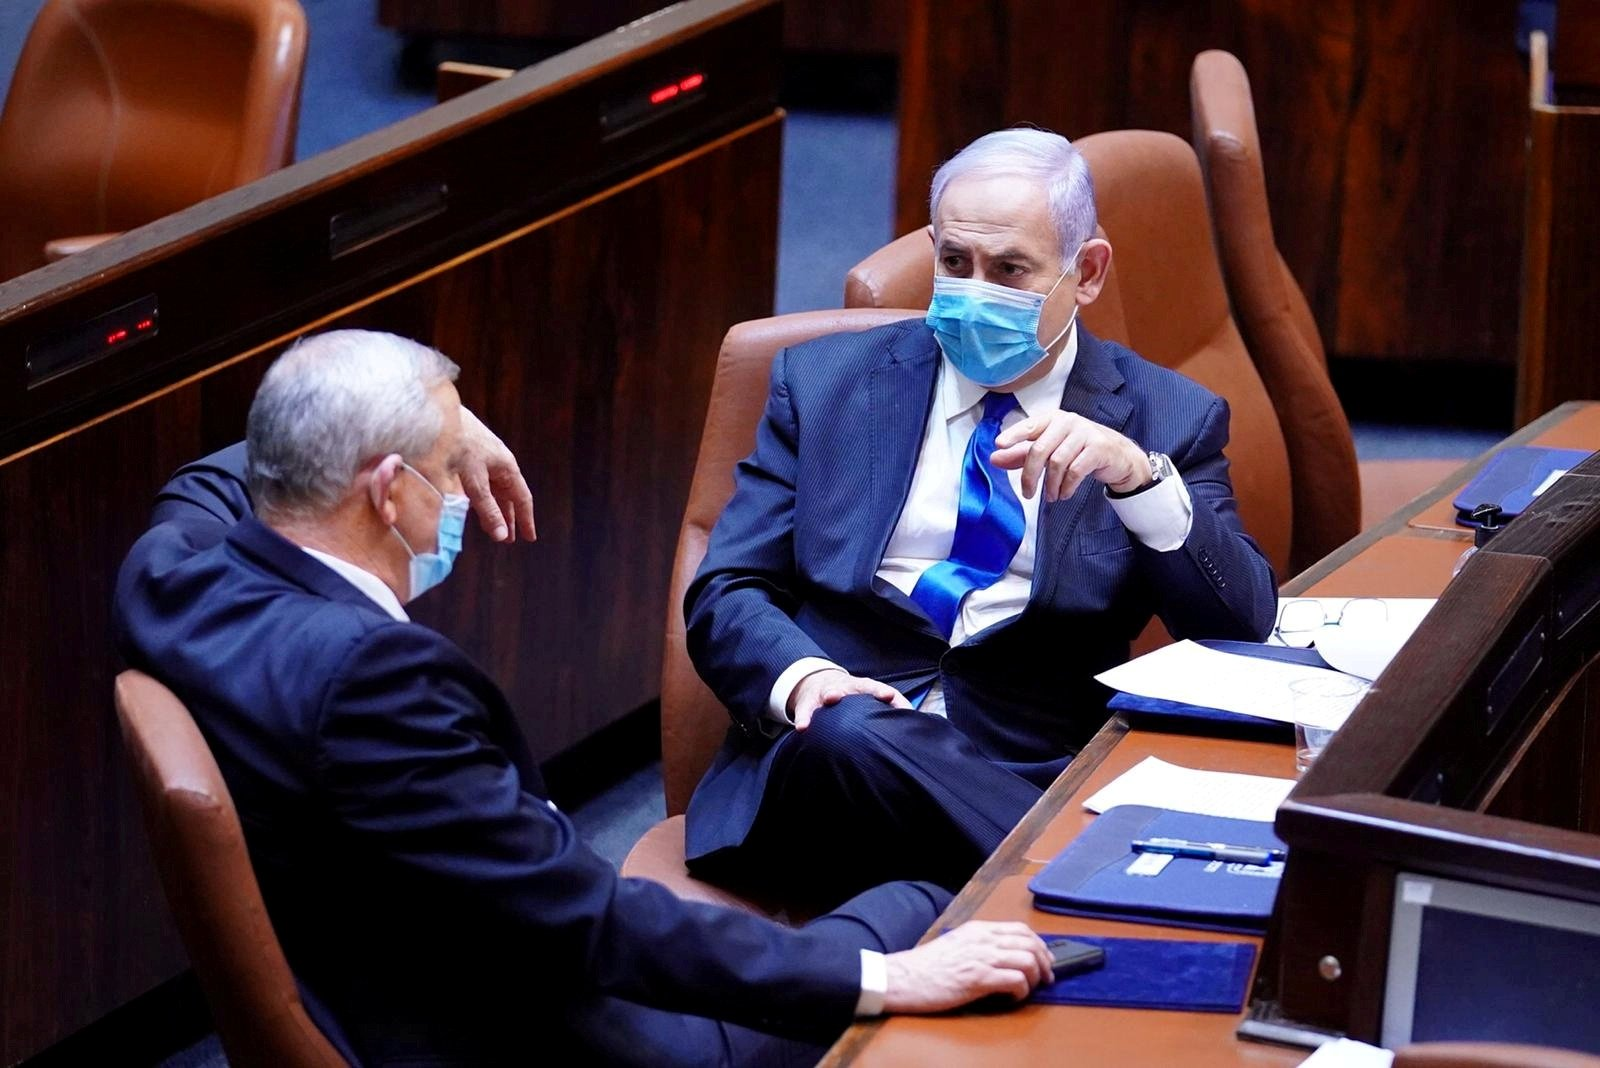 Israeli Prime Minister Benjamin Netanyahu (R) and Benny Gantz, centrist Blue and White leader and Netanyahu's partner in his new unity government, wear face masks as they talk during a swearing-in ceremony of the new government, at the Knesset, in Jerusalem, May 17, 2020. (Amos Ben Gershon/Knesset Spokesperson's Office Handout via Reuters)